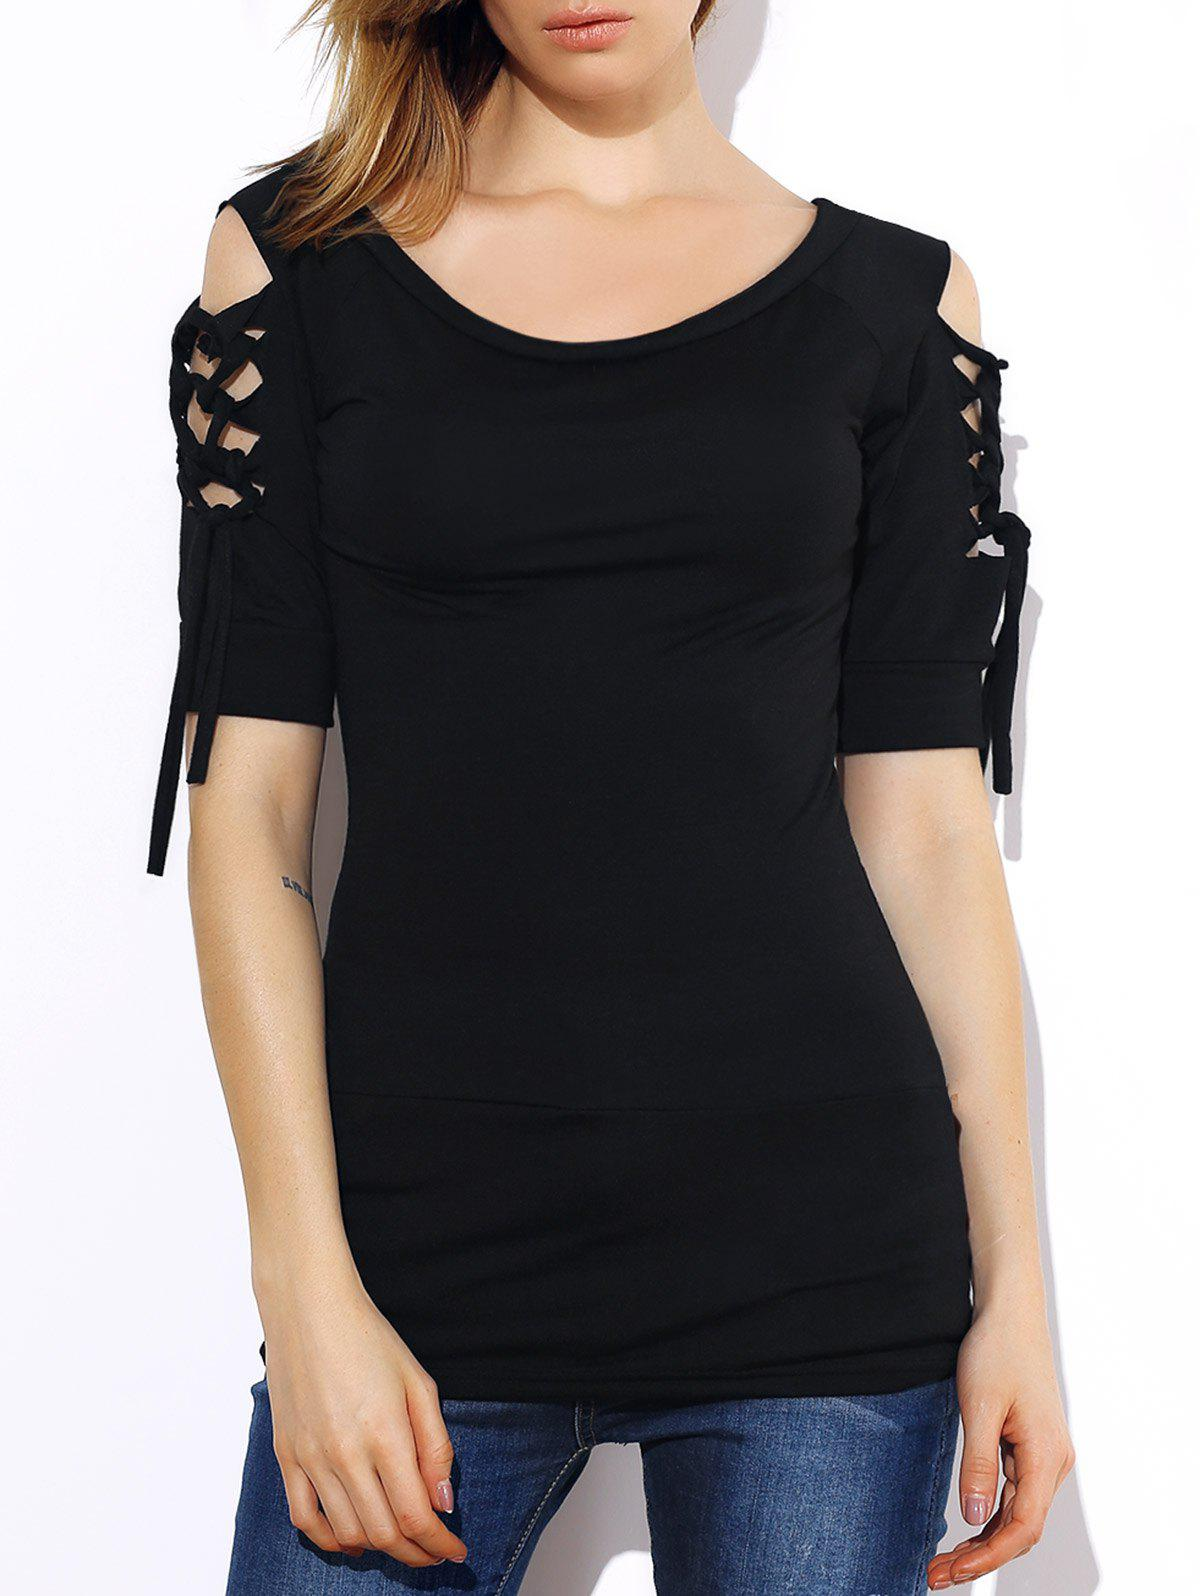 Fashionable Short Sleeve Scoop Neck Solid Color Lace-Up Hollow Out T-Shirt For Women - BLACK S